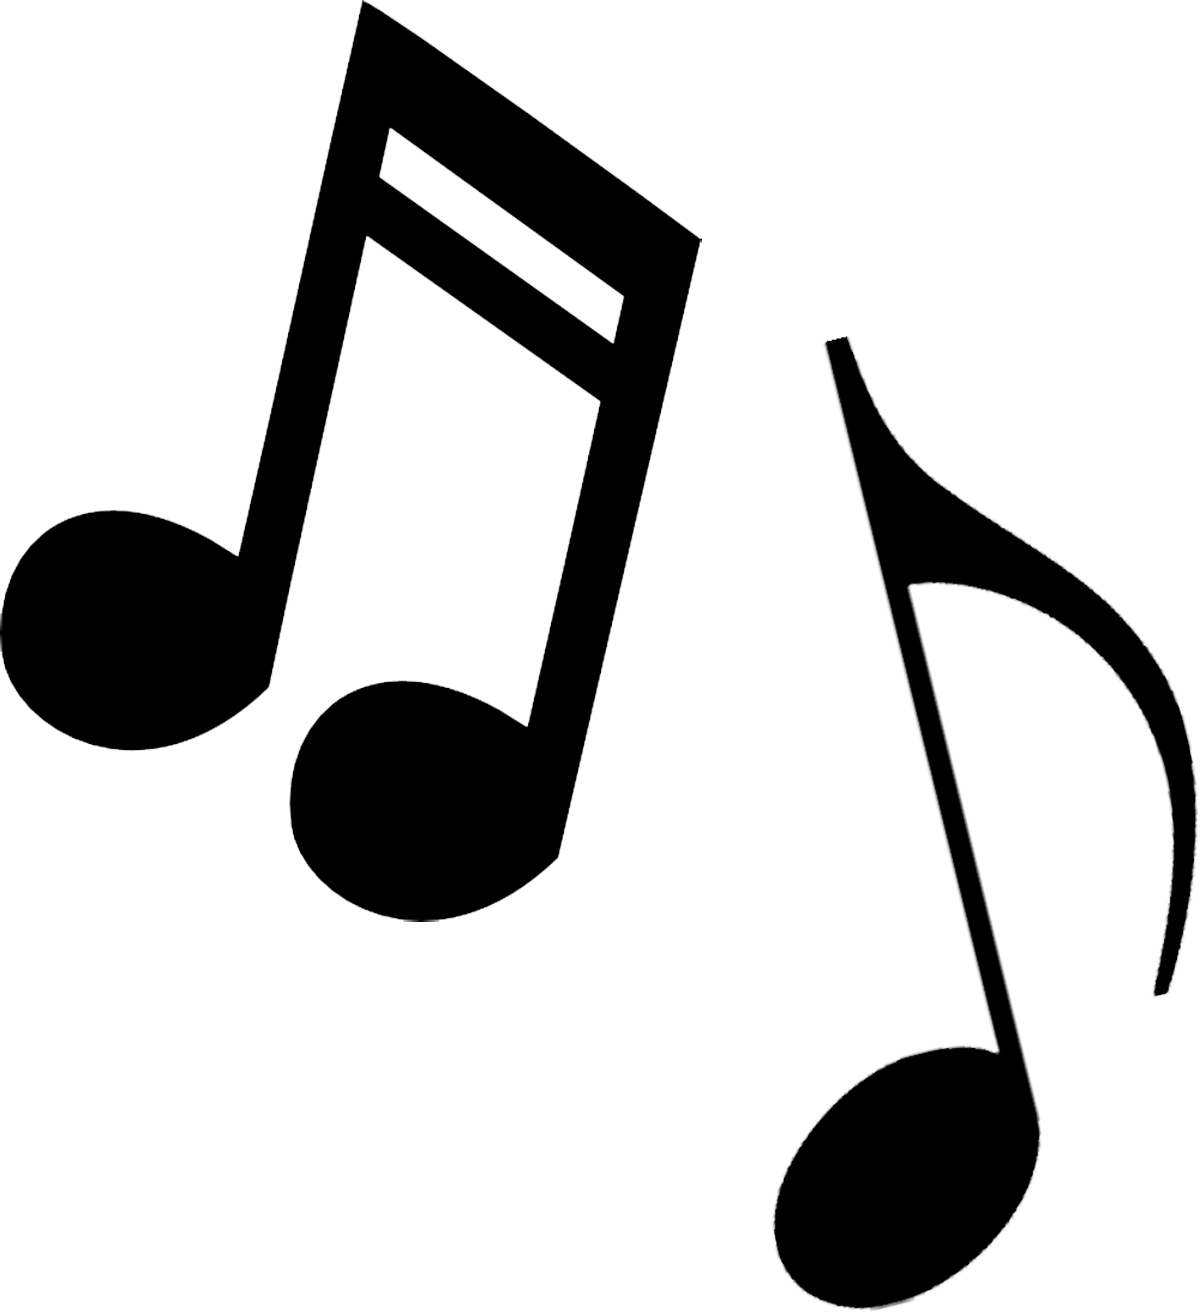 collection of band. Orchestra clipart music symbol